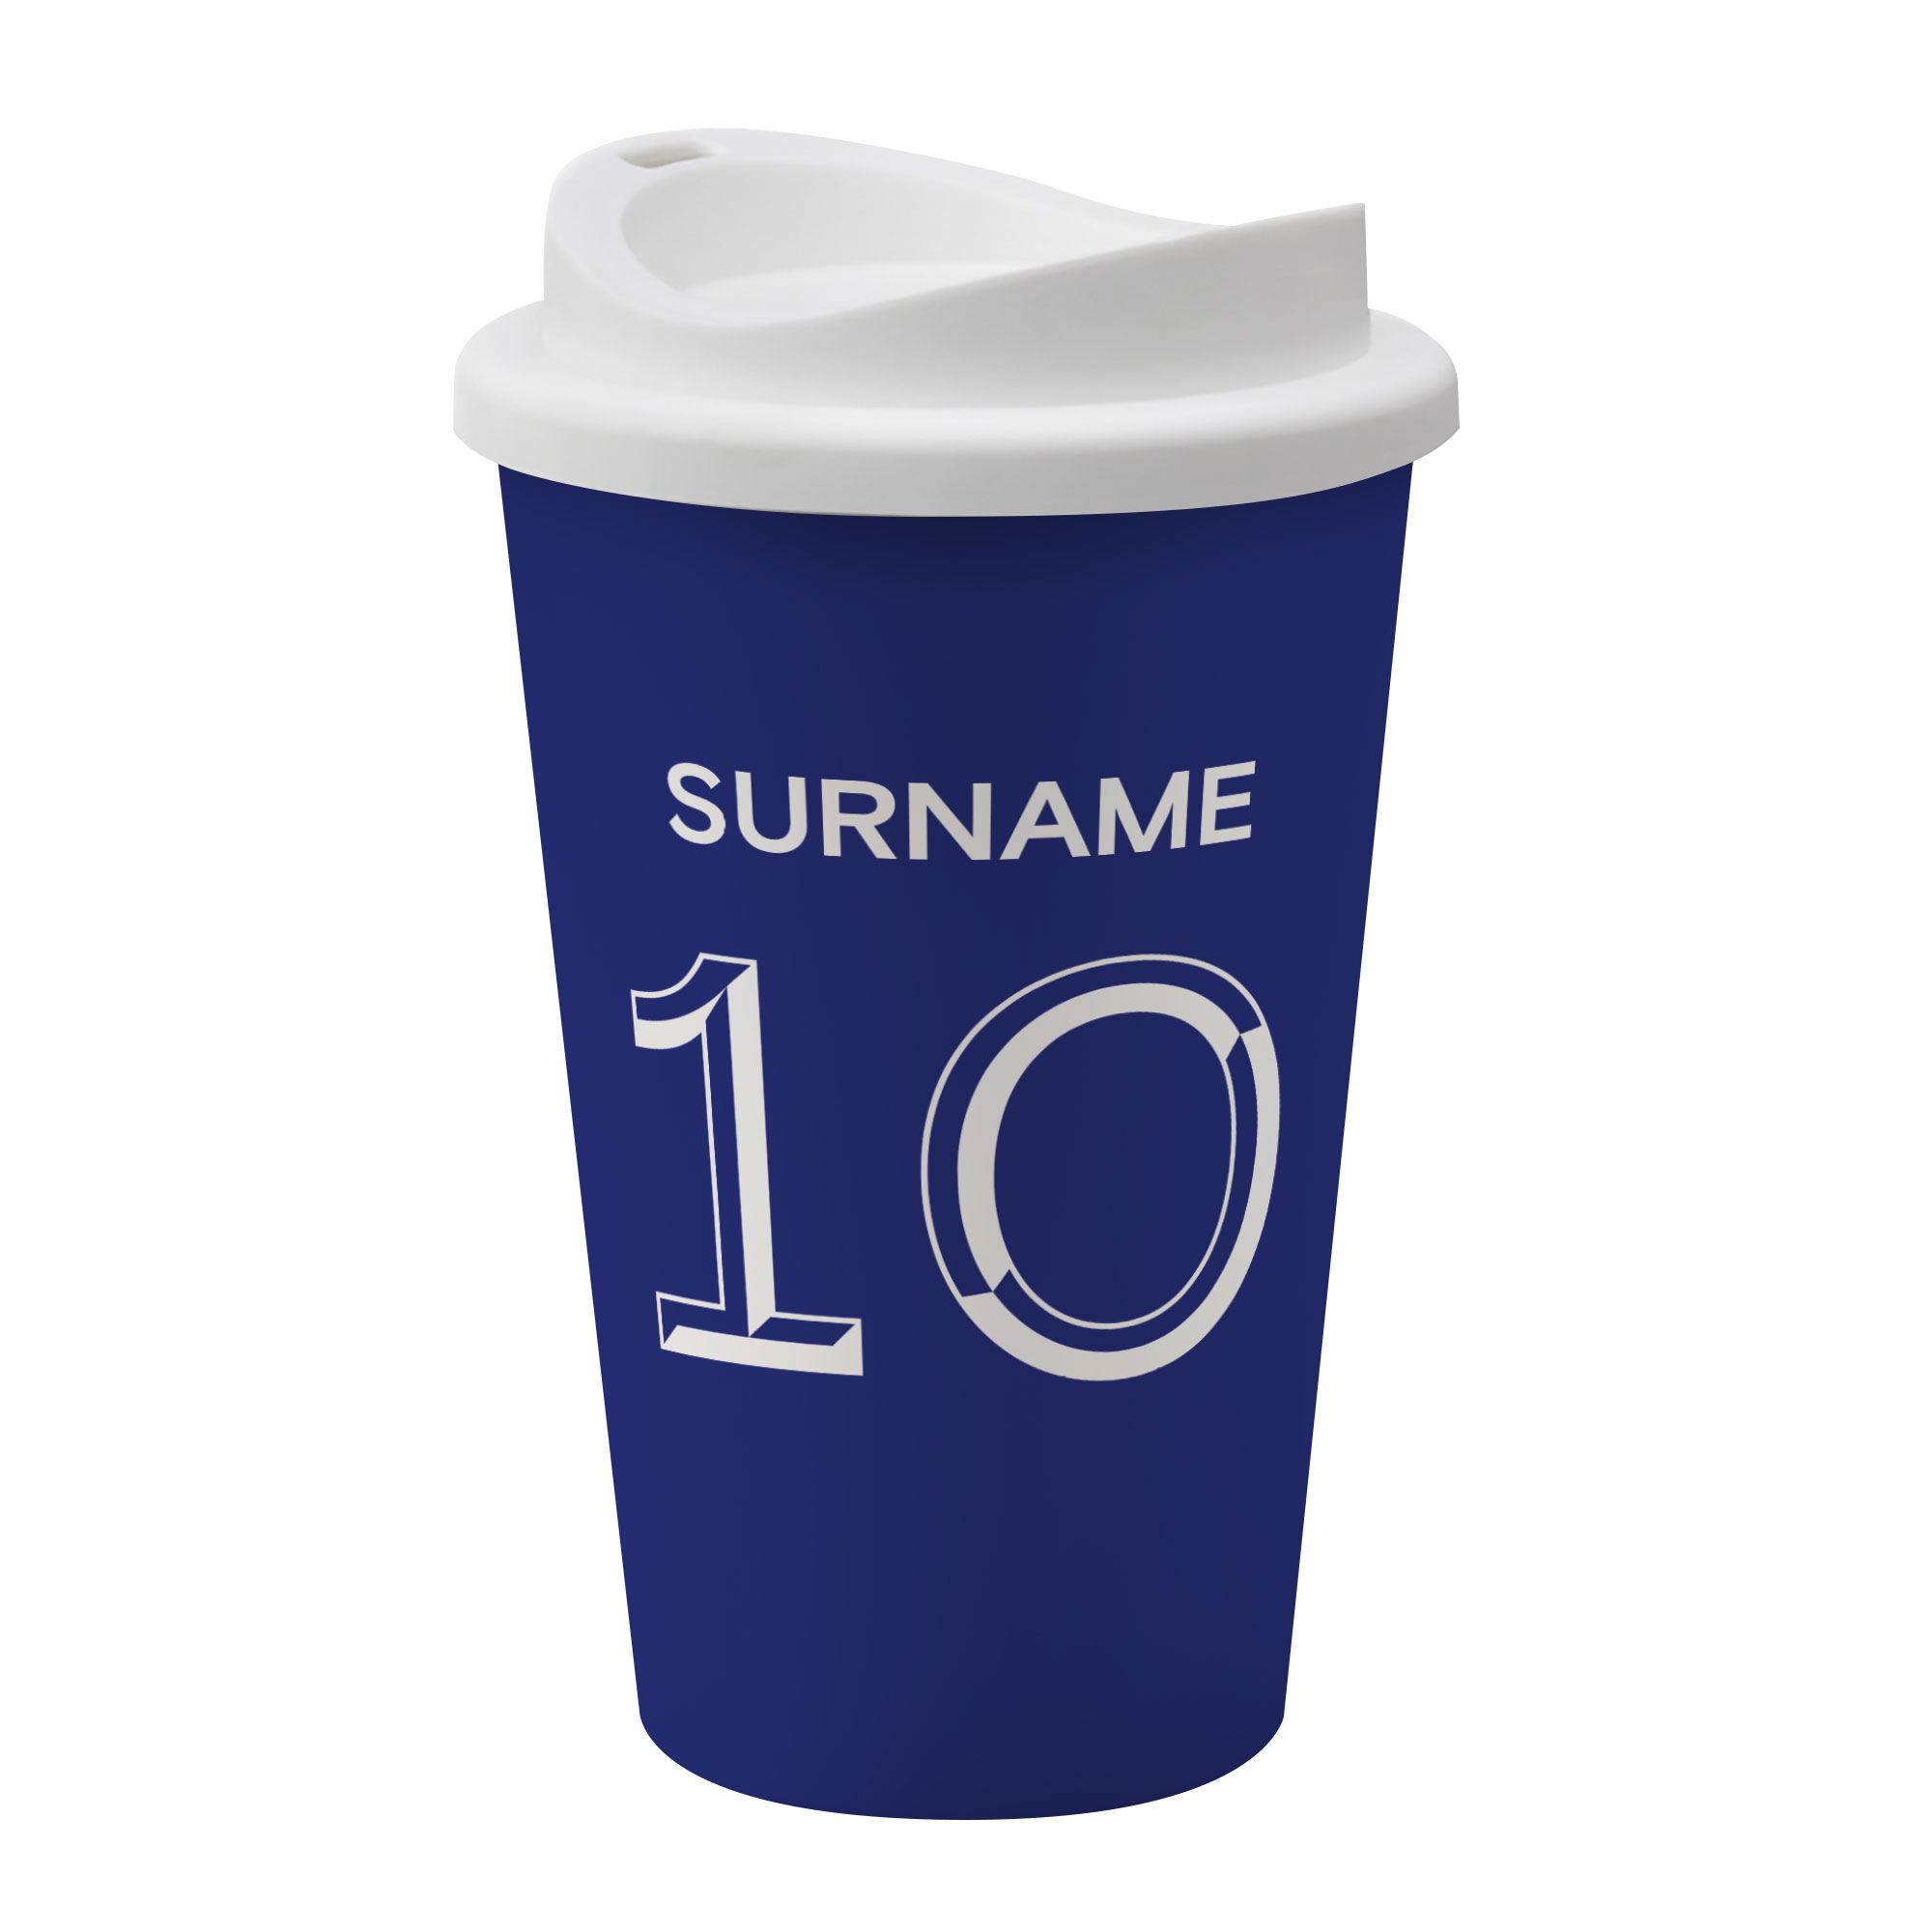 Chelsea FC Back of Shirt Reusable Cup